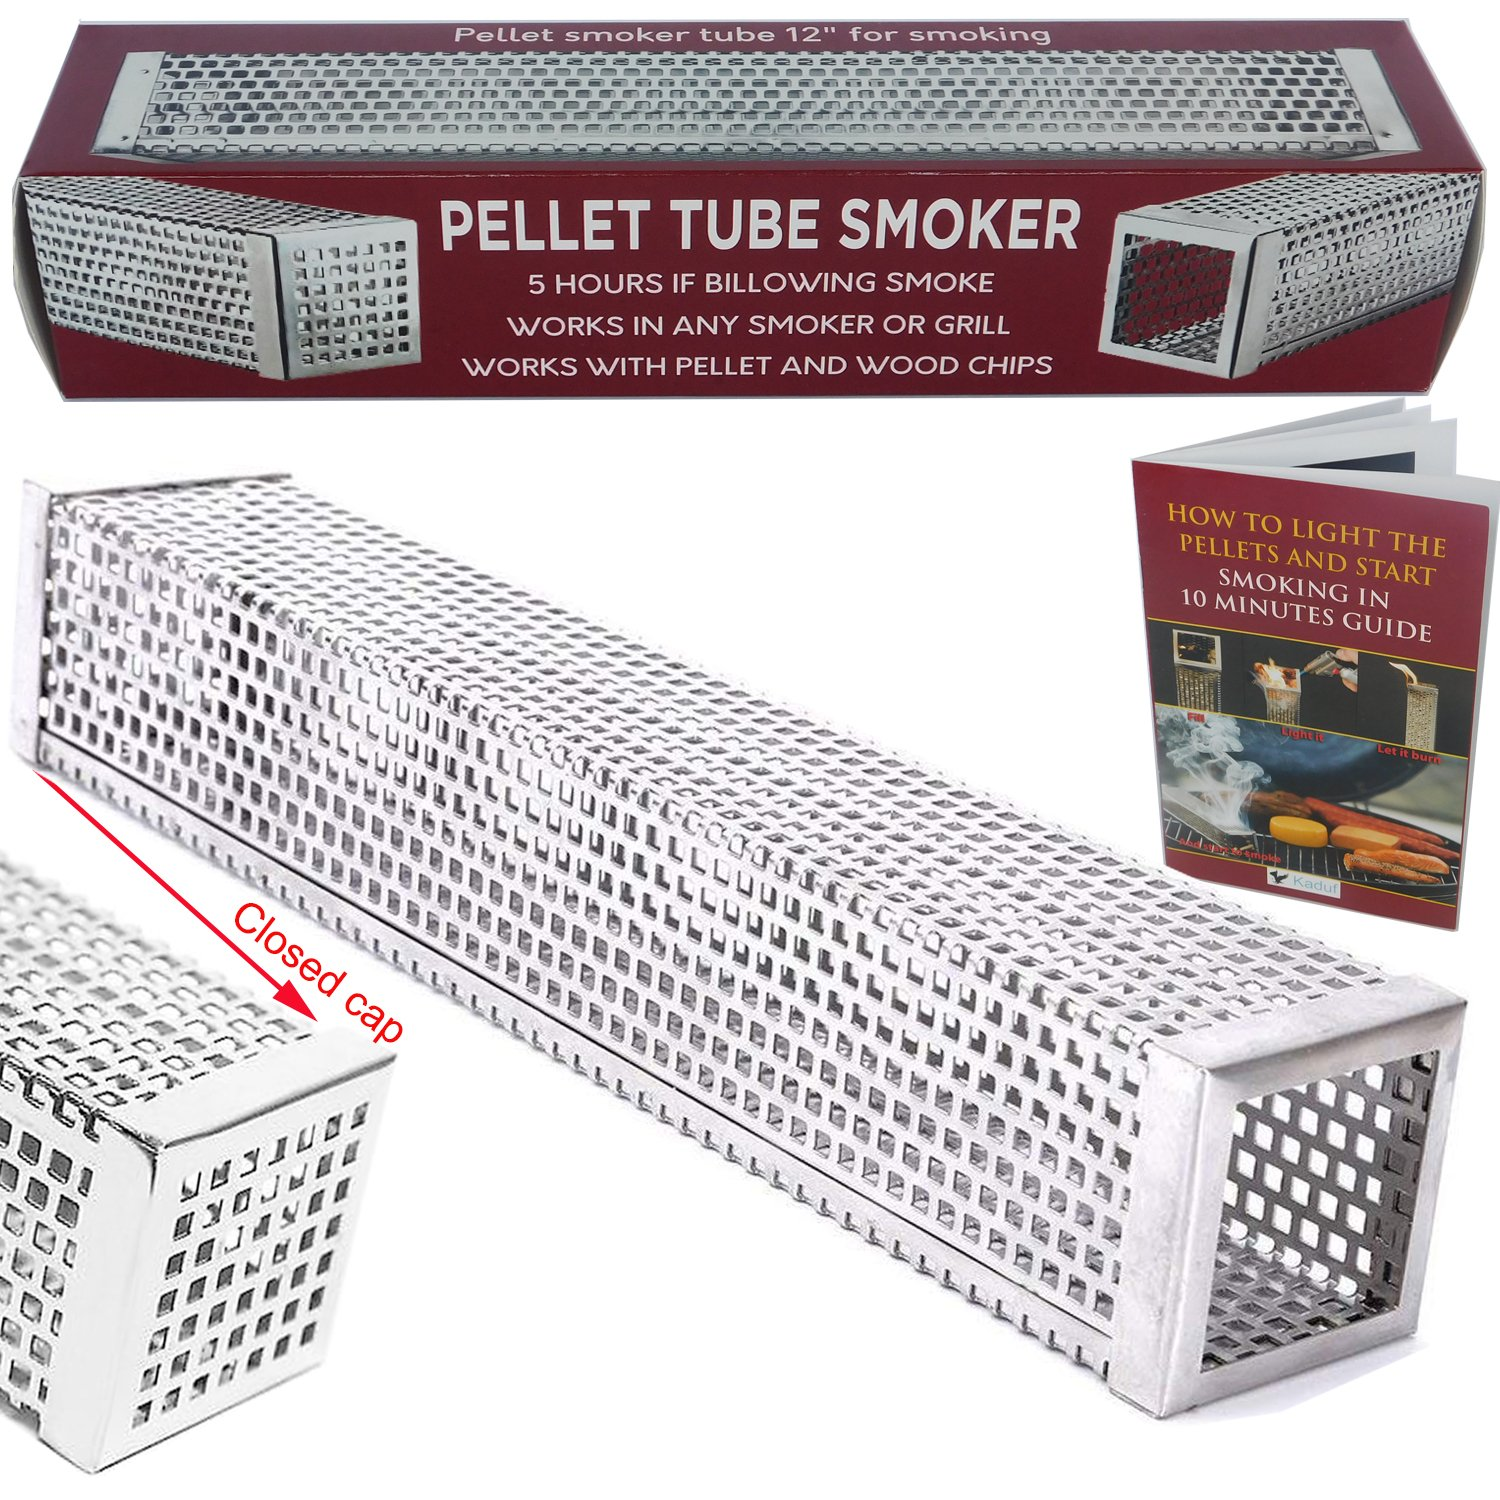 Kaduf Pellet Smoker Tube 12'', 5 Hours Billowing Smoke any Grill Smoker Cold & Hot Smoking Pork, Fish, Cheese - Works Wood Pellets - Free eBook Smoking Recipes